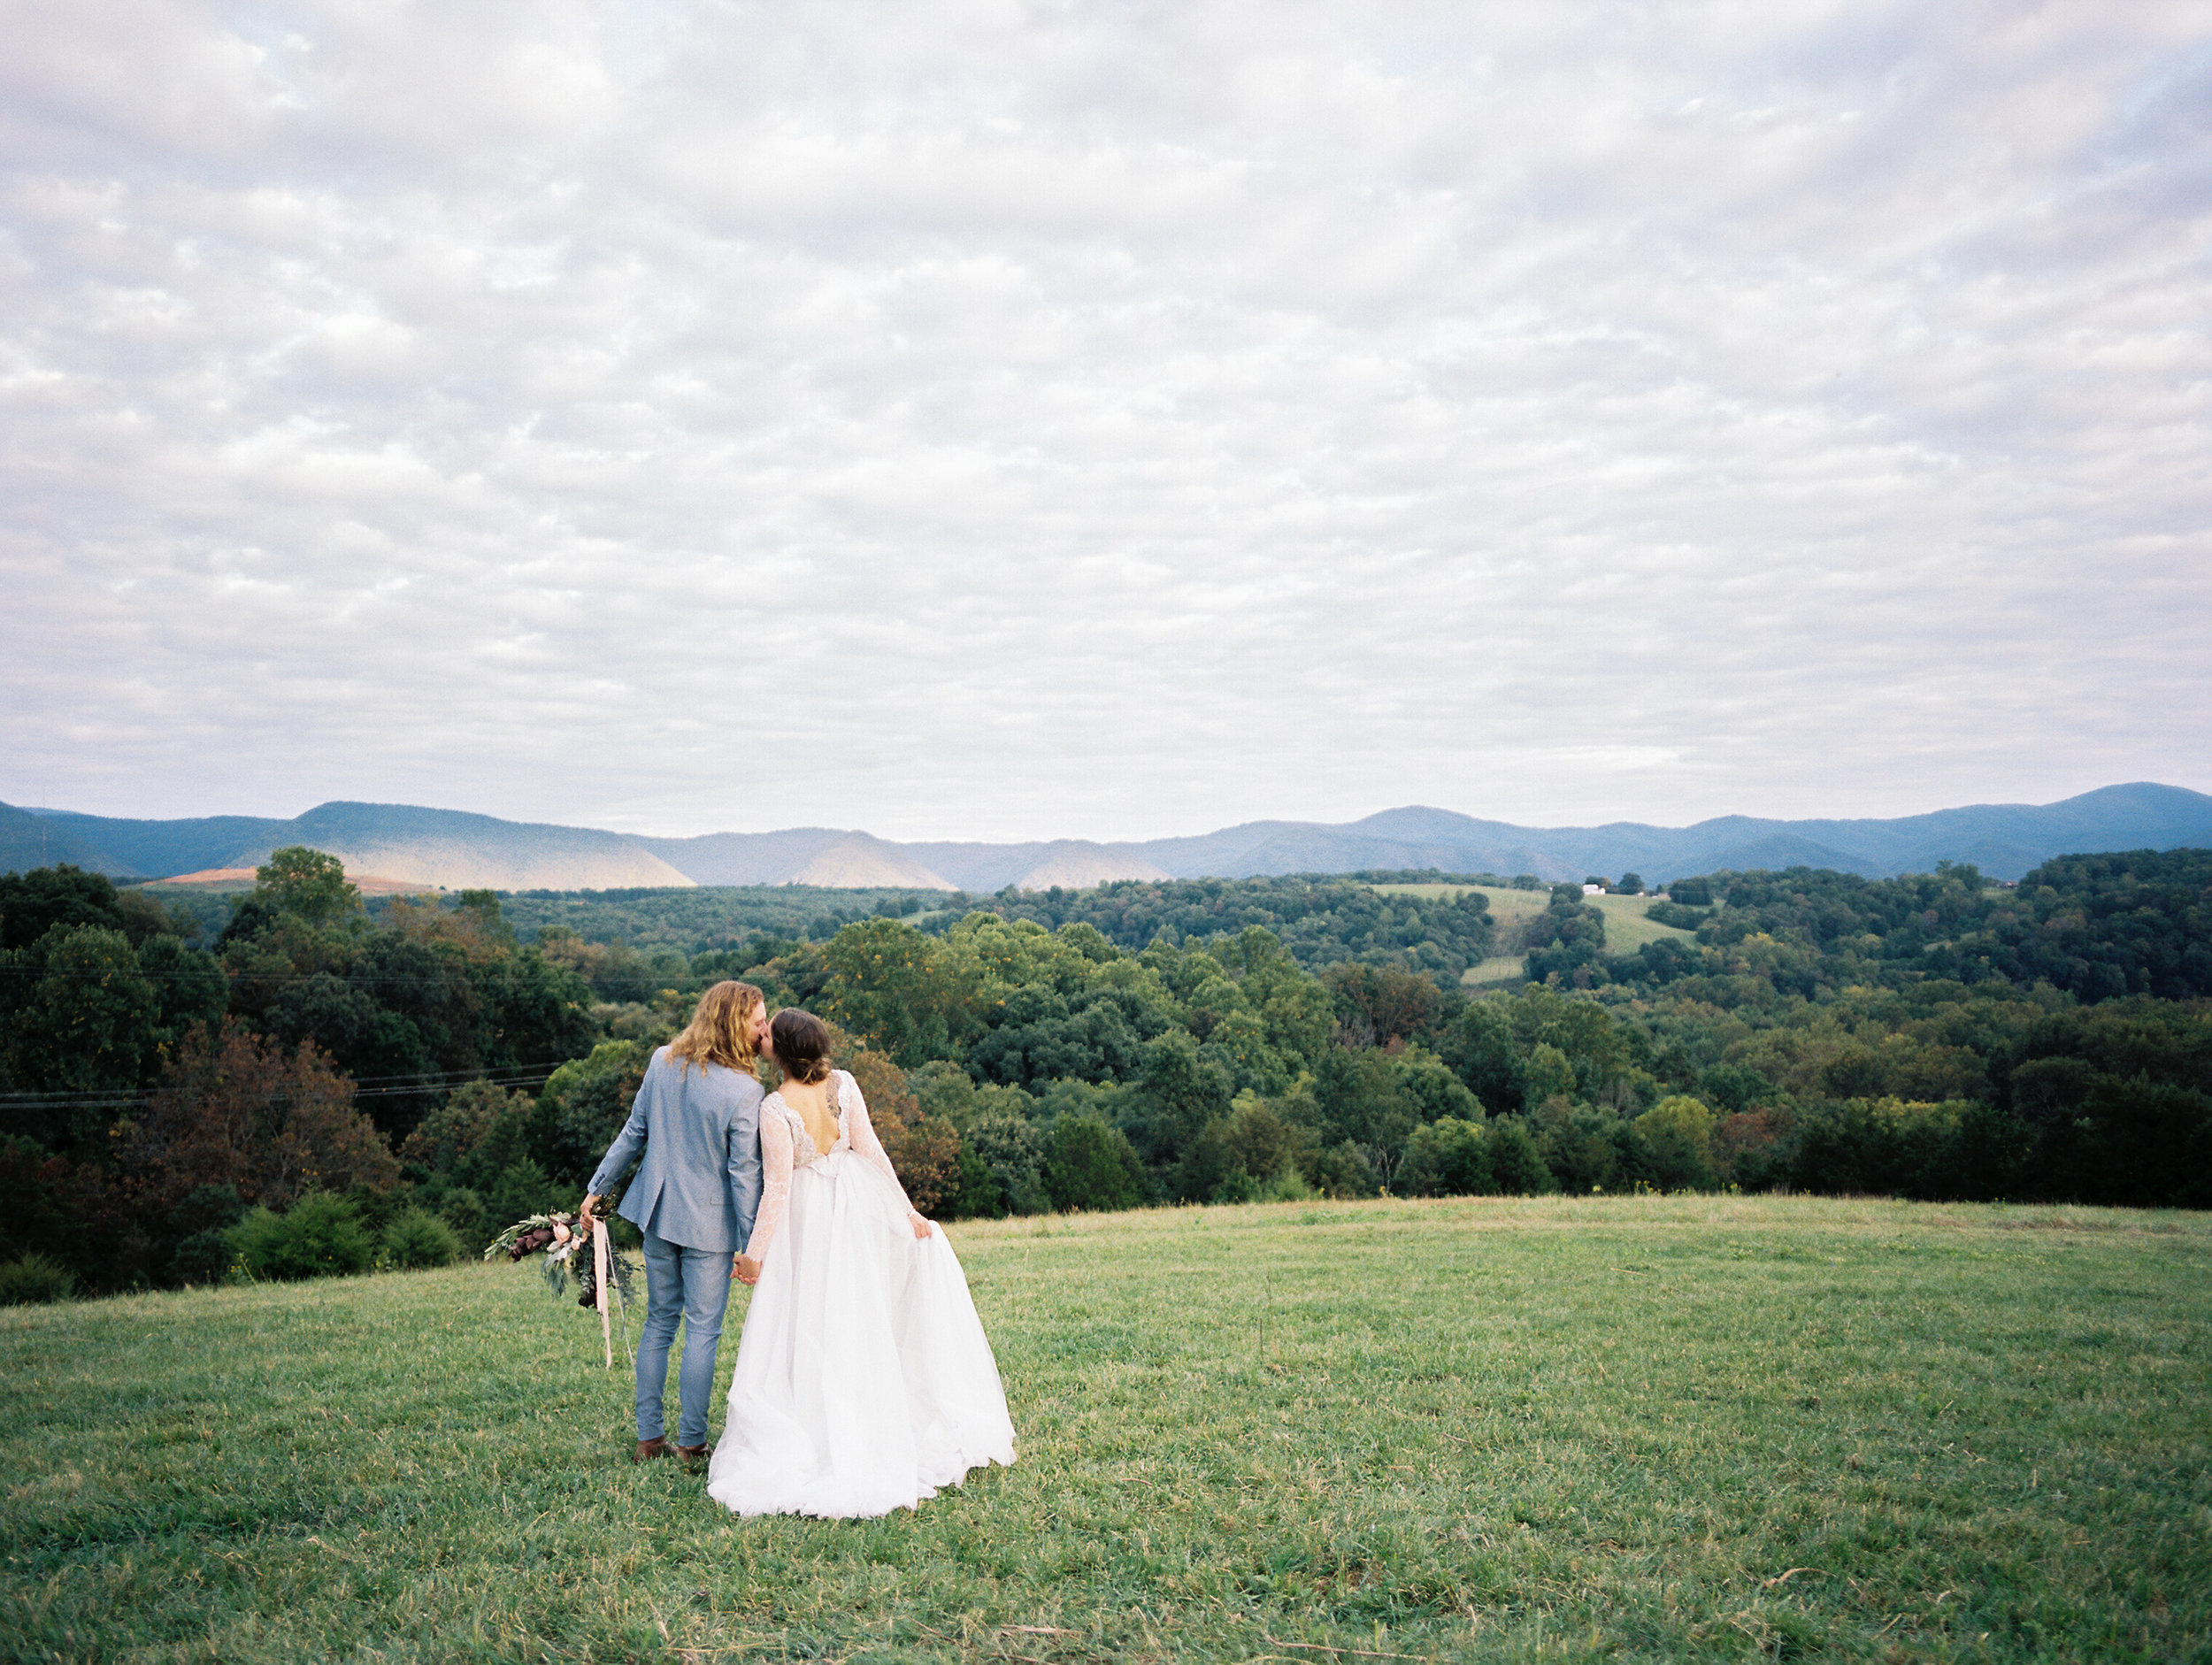 bohemian wedding on a mountain